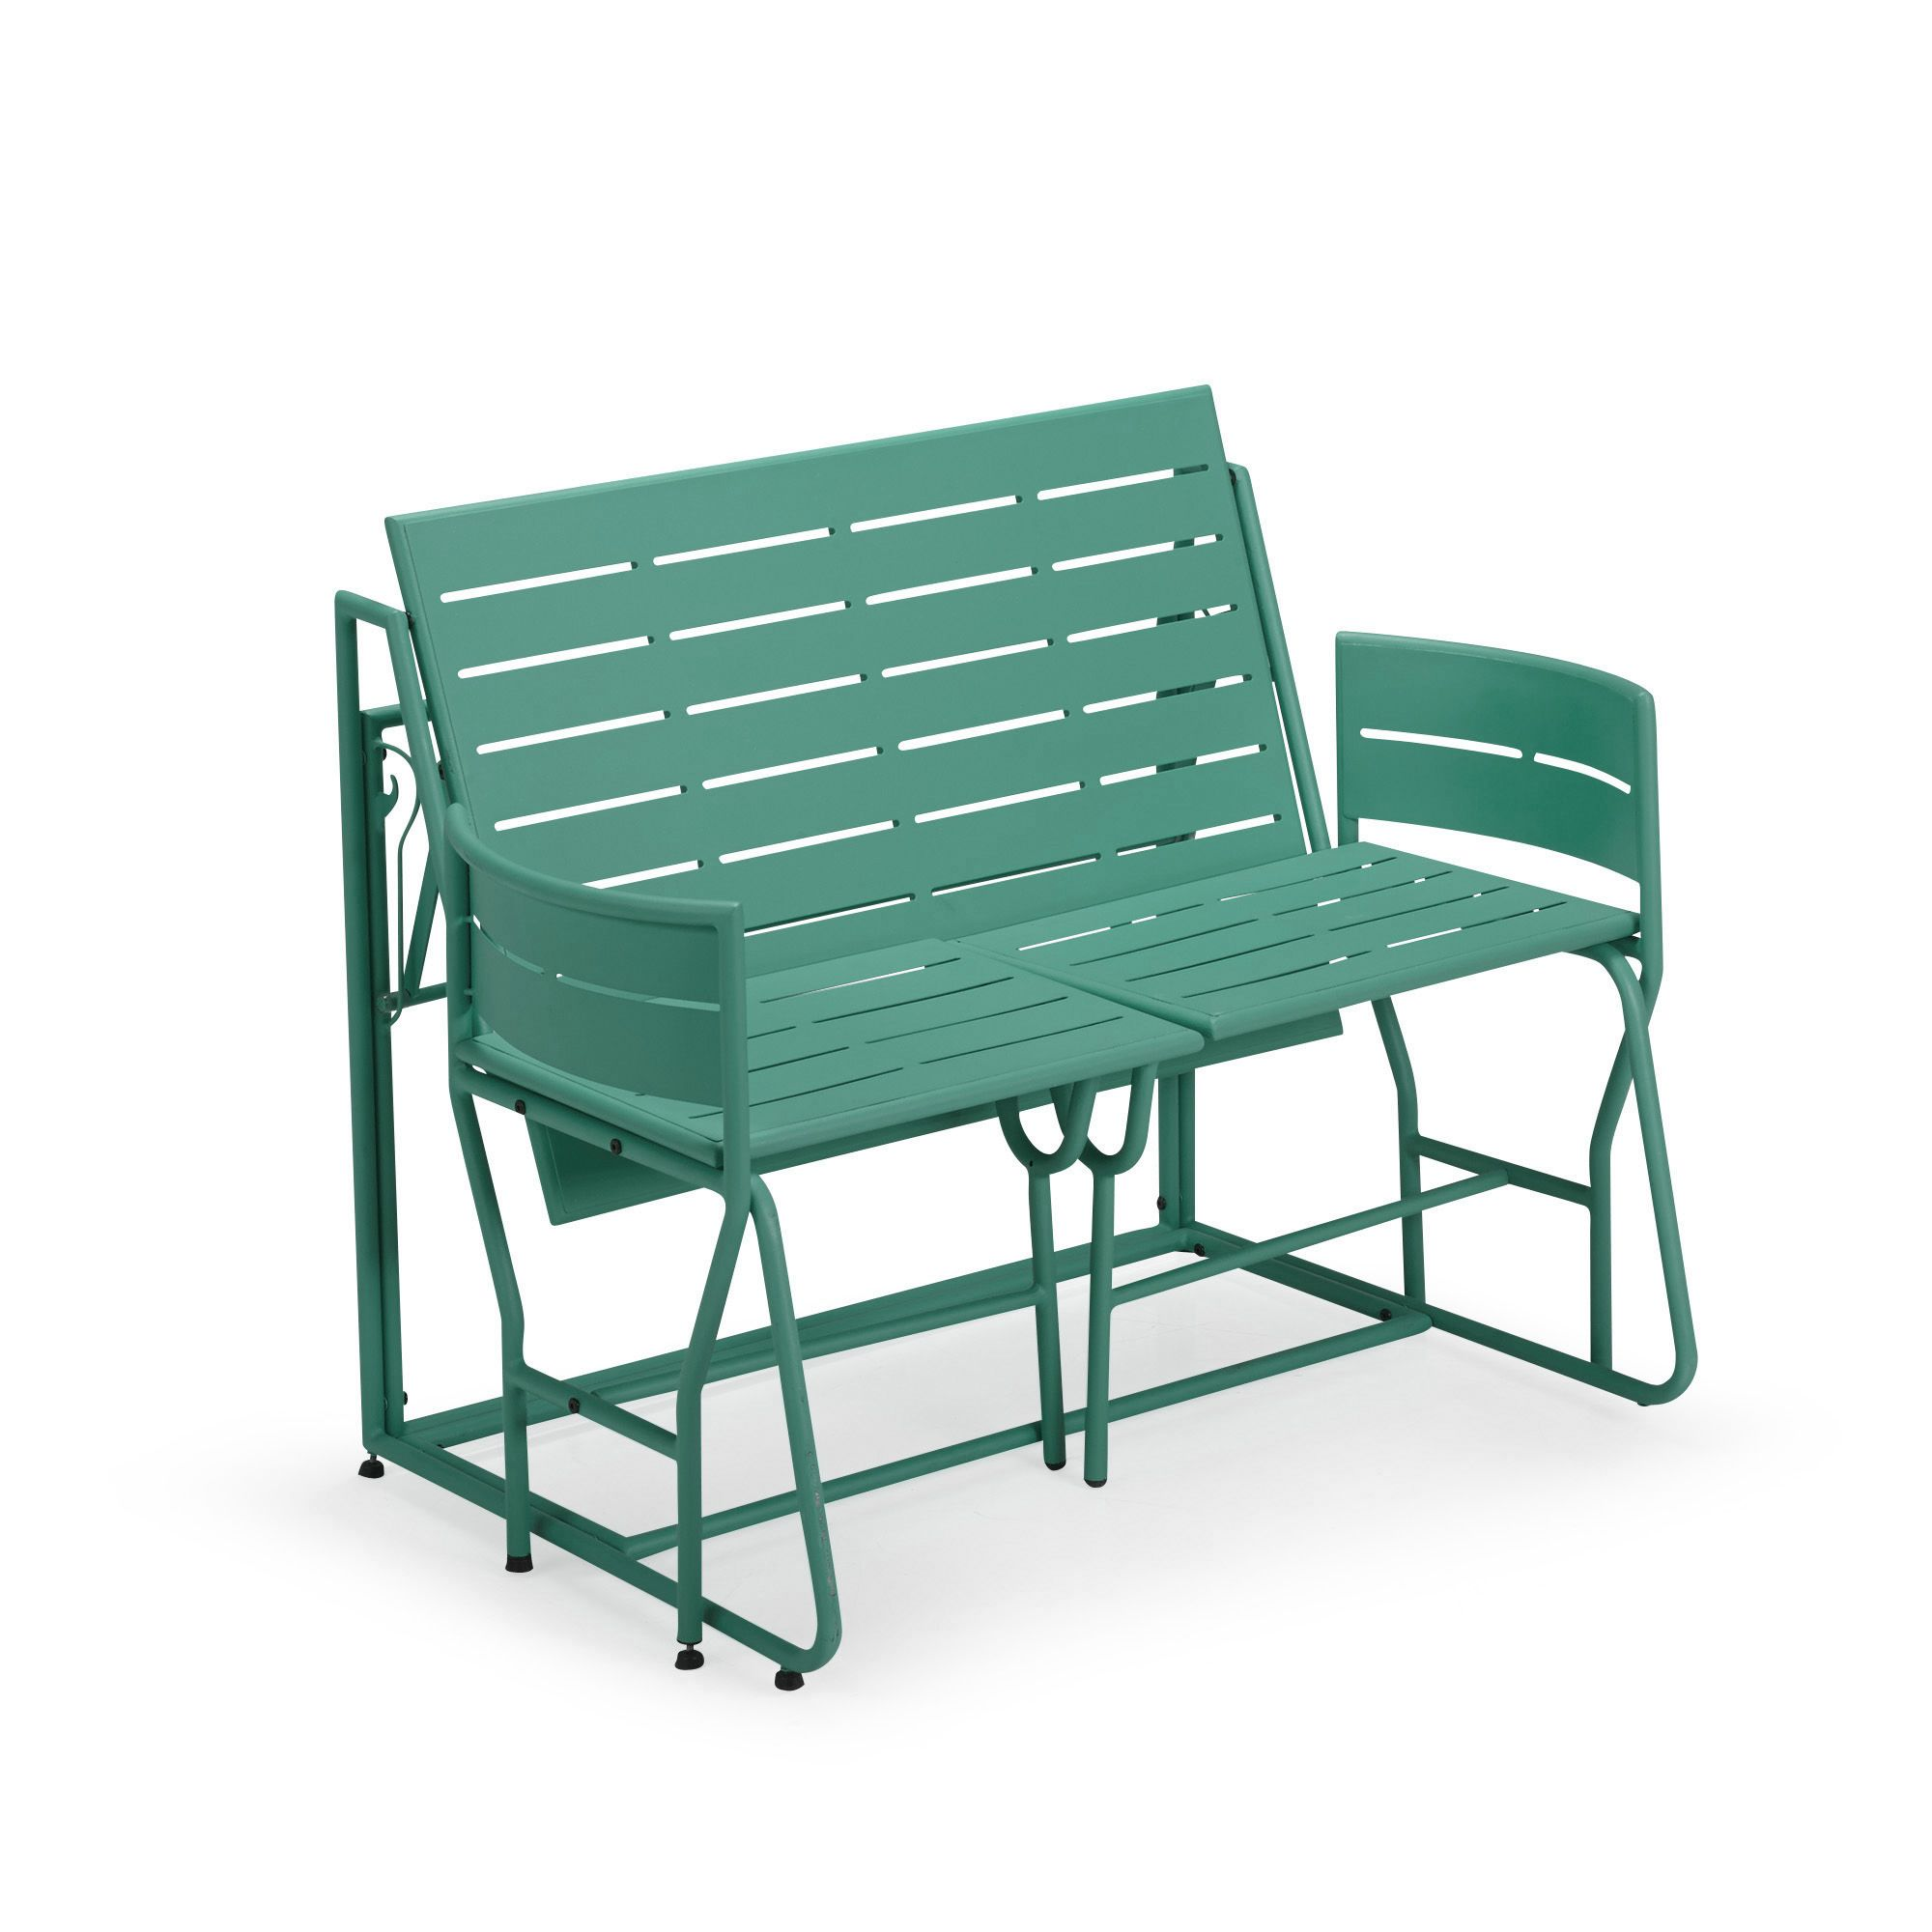 Picnic le salon de jardin balcon transformable 2 en 1 for Petit salon de jardin pour balcon